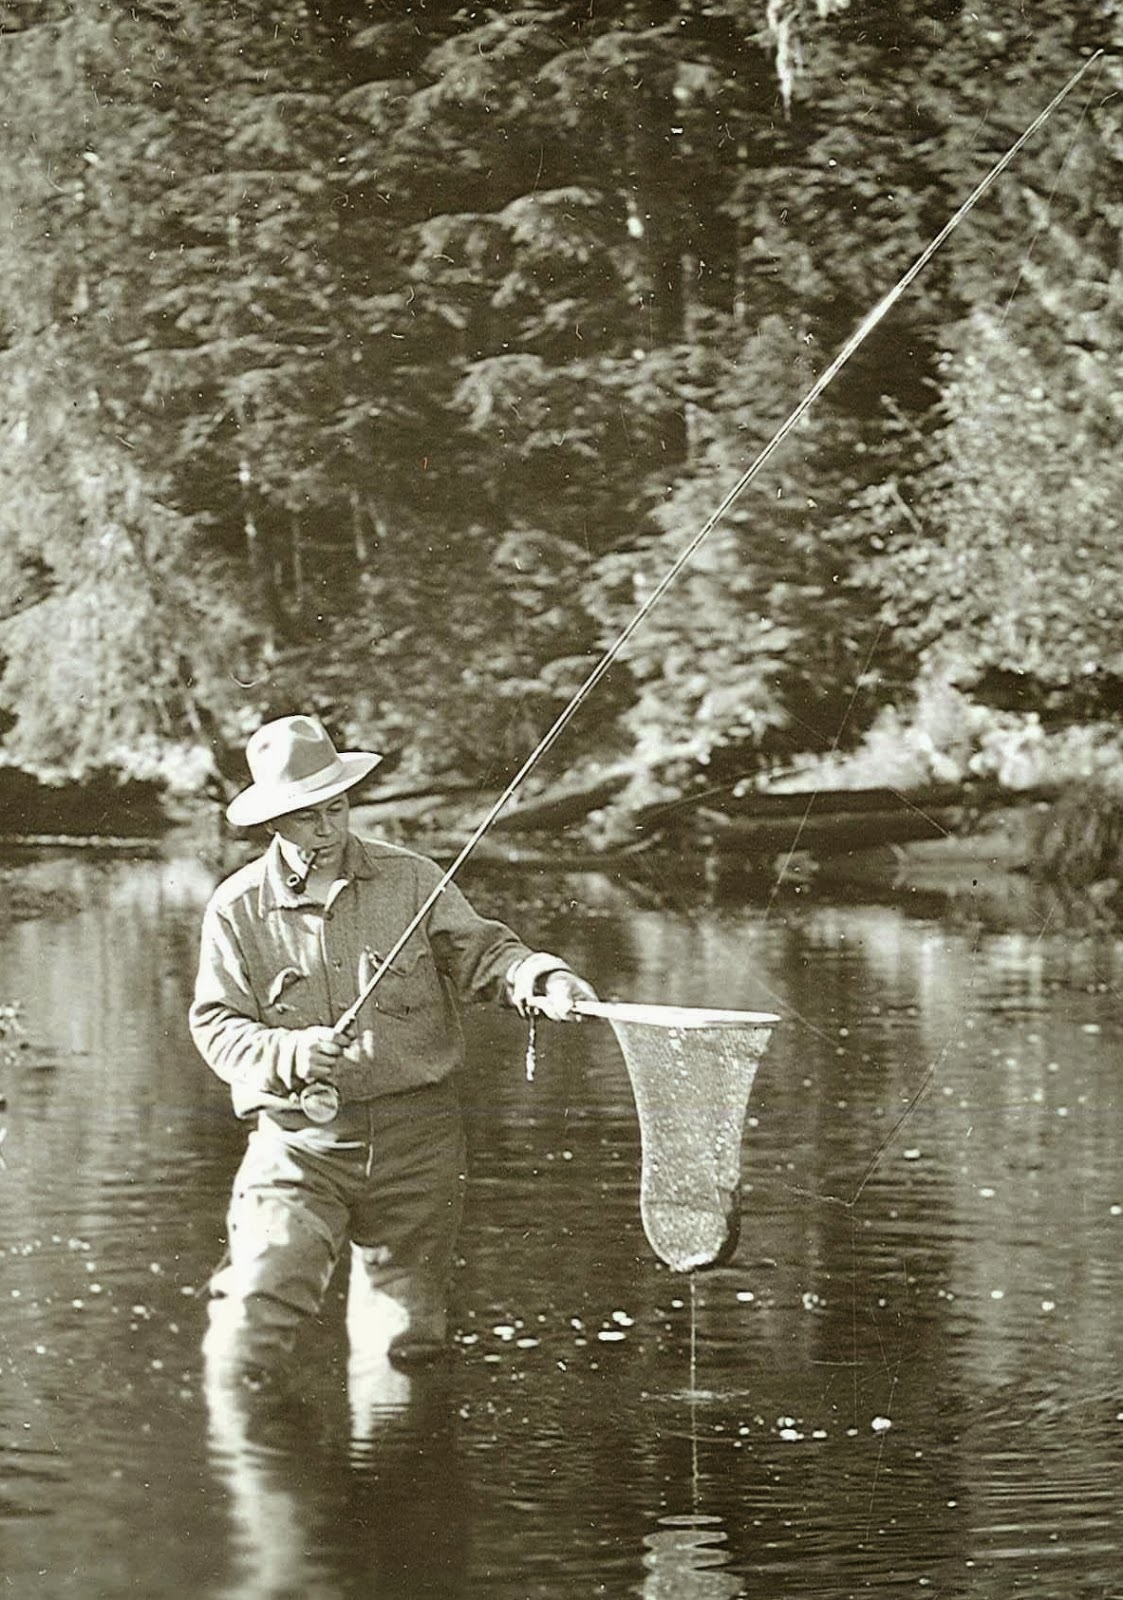 A black and white photograph of a man fishing.